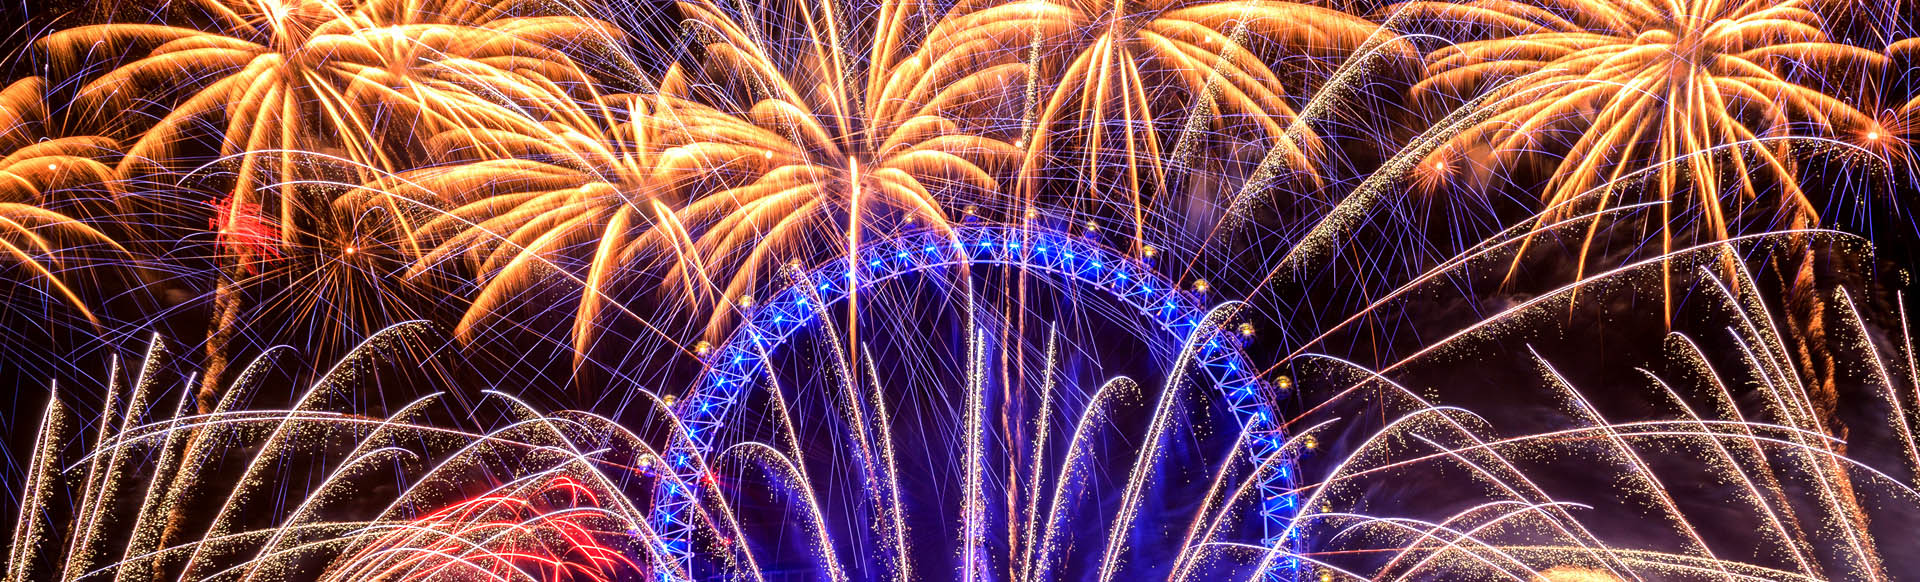 Golden fireworks light up the sky over the London Eye.